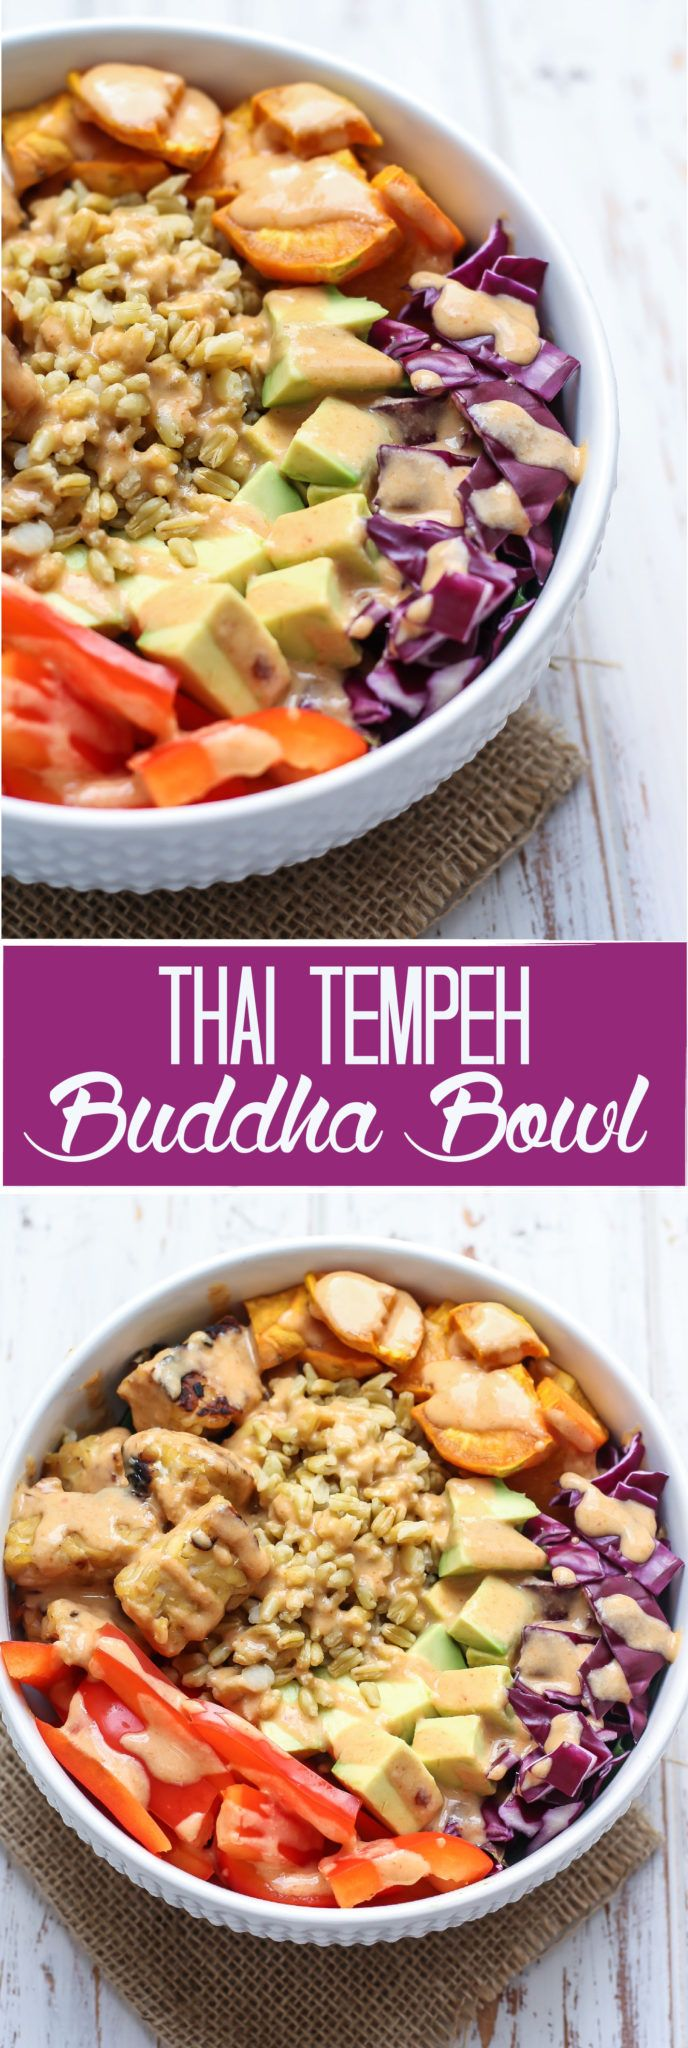 Thai Tempeh Buddha Bowl [vegan, high-protein]